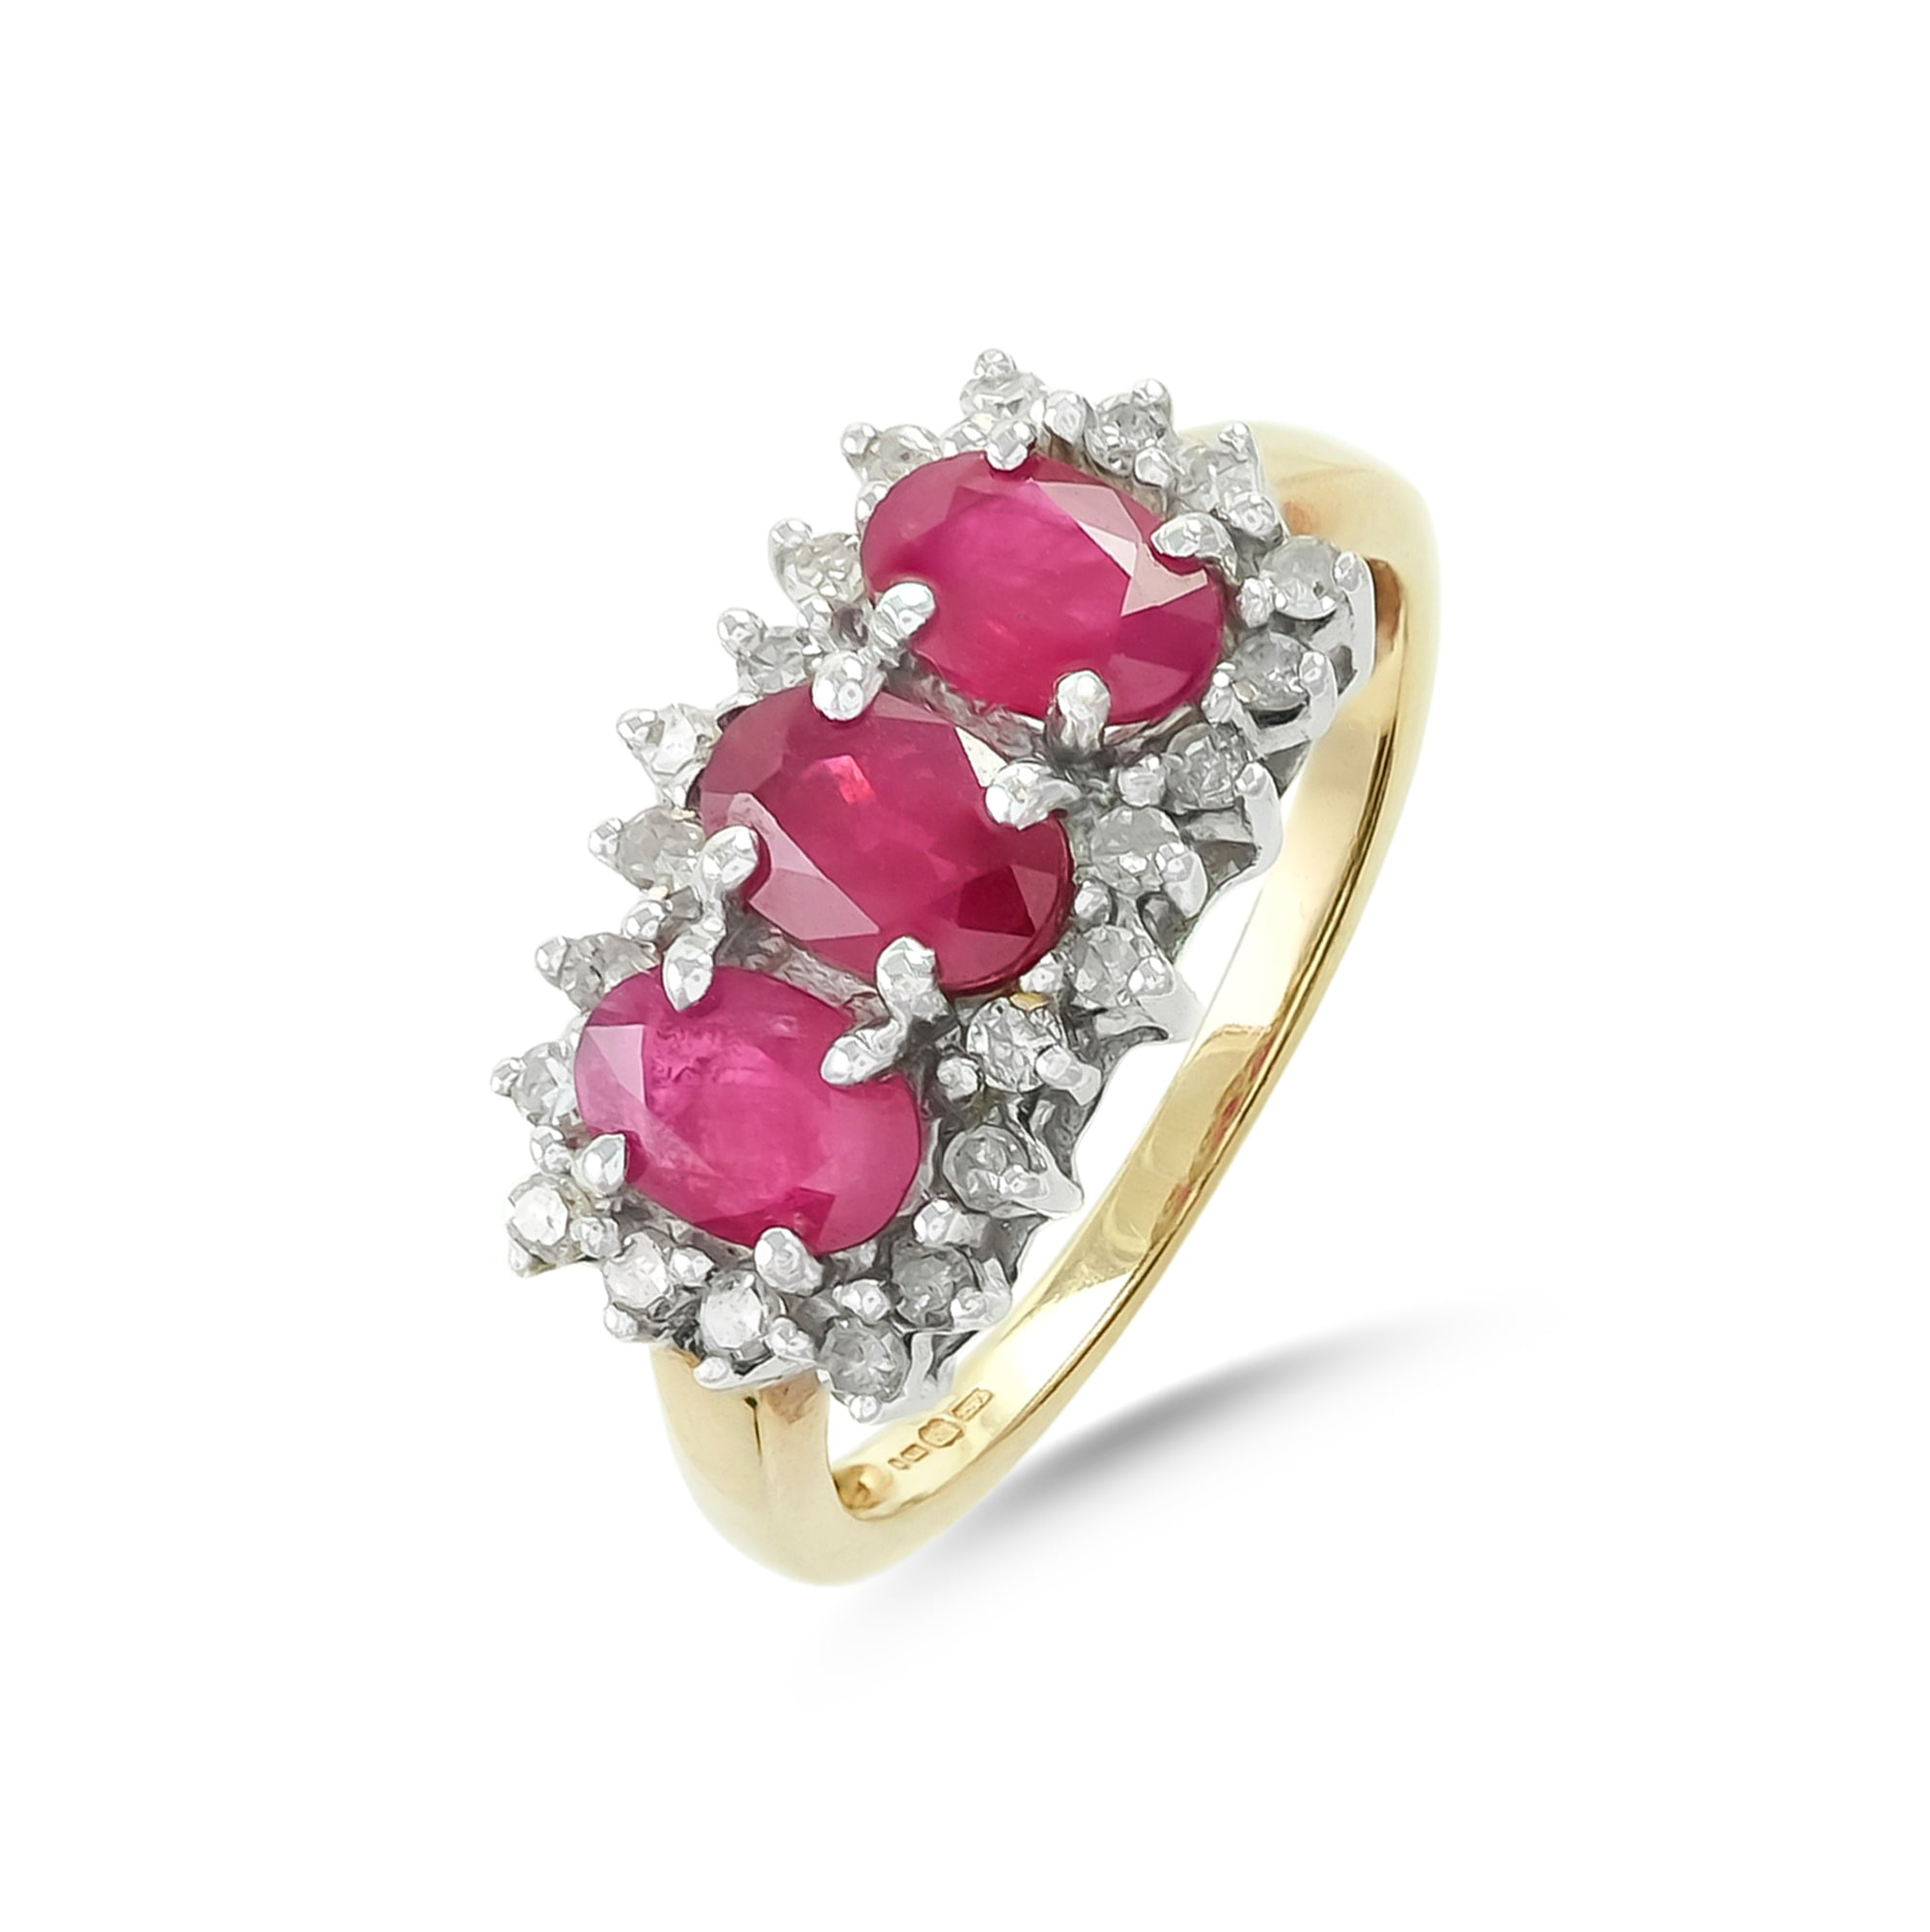 Vintage 9ct Yellow Gold Three Stone Ruby Ring